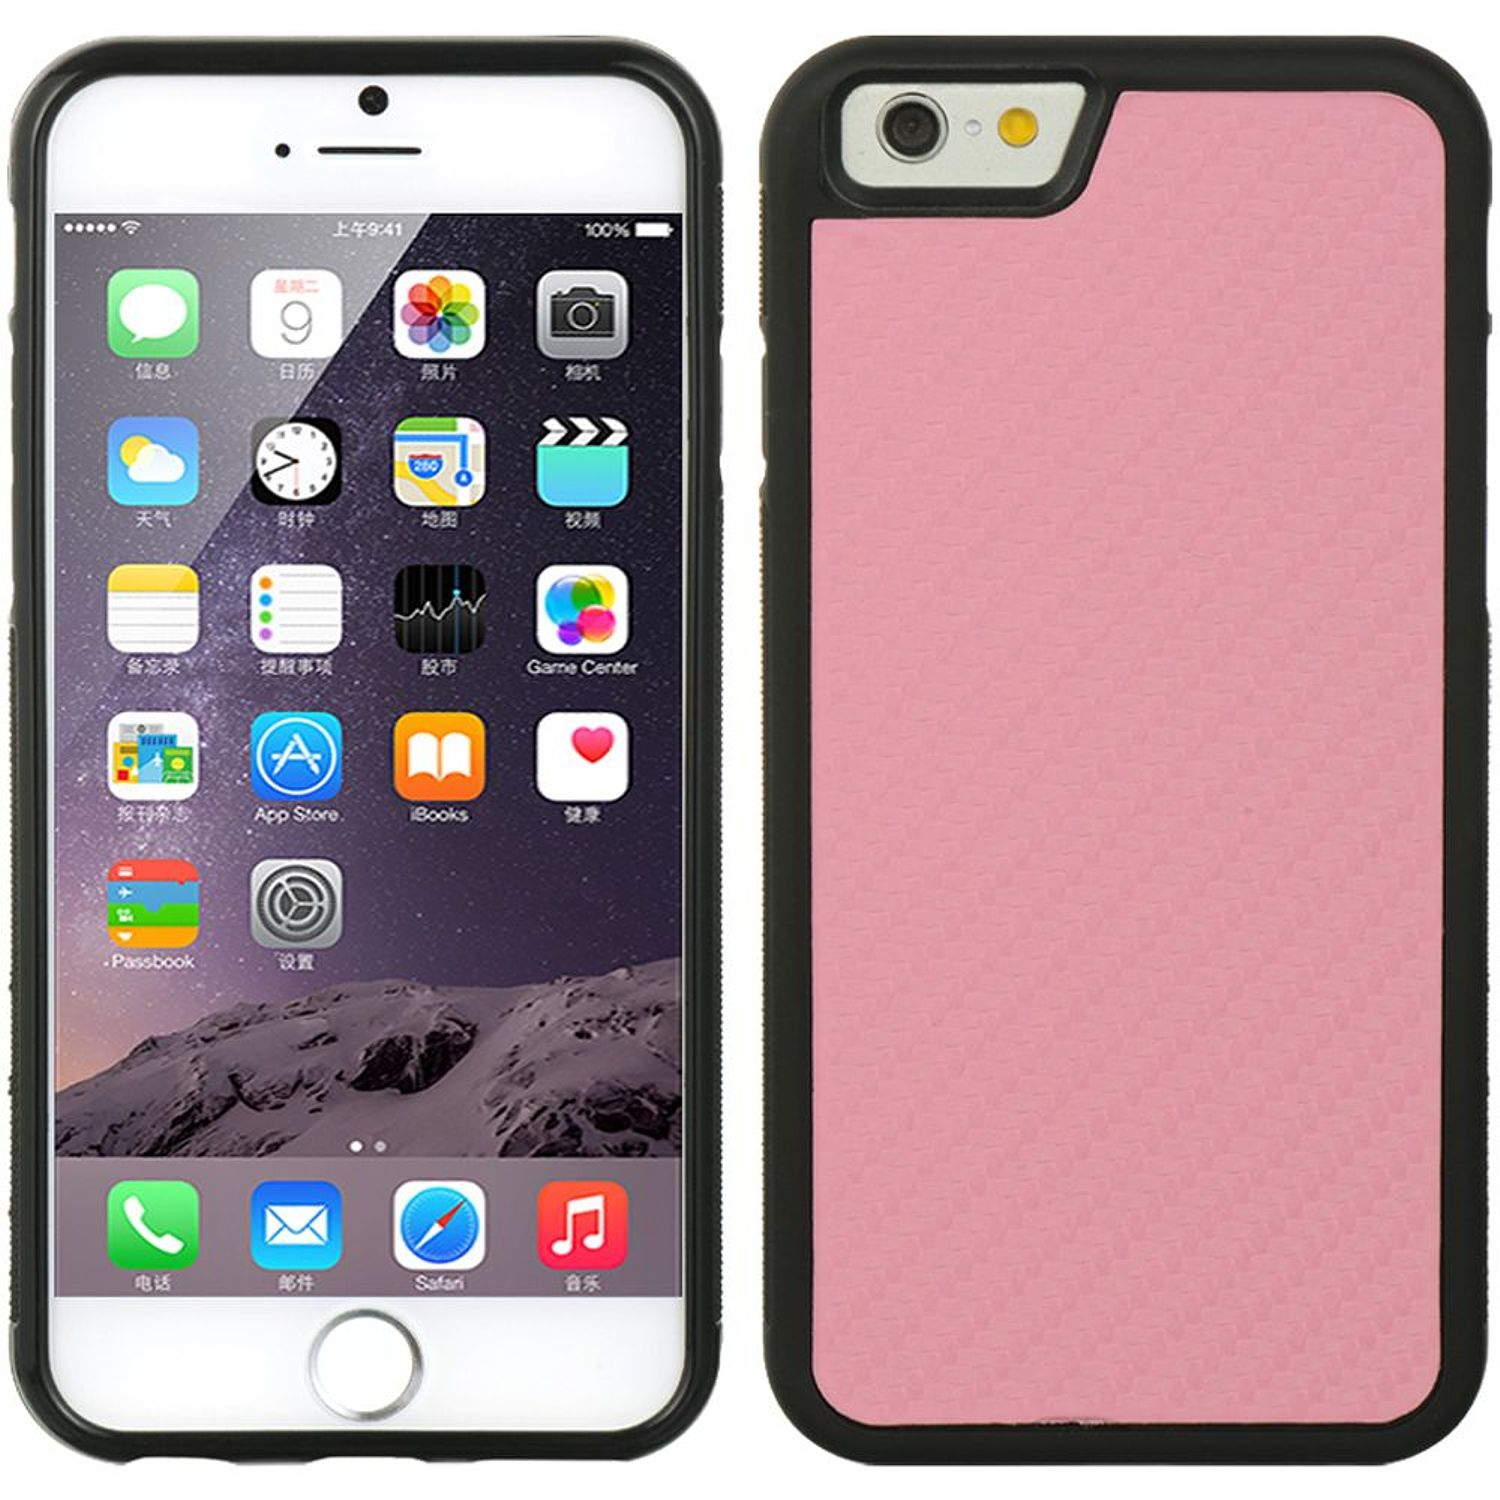 Apple iPhone 6 Plus/6s Plus Case, by DreamWireless Rubber TPU Case Cover For Apple iPhone 6 Plus/6s Plus, Hot Pink/Black